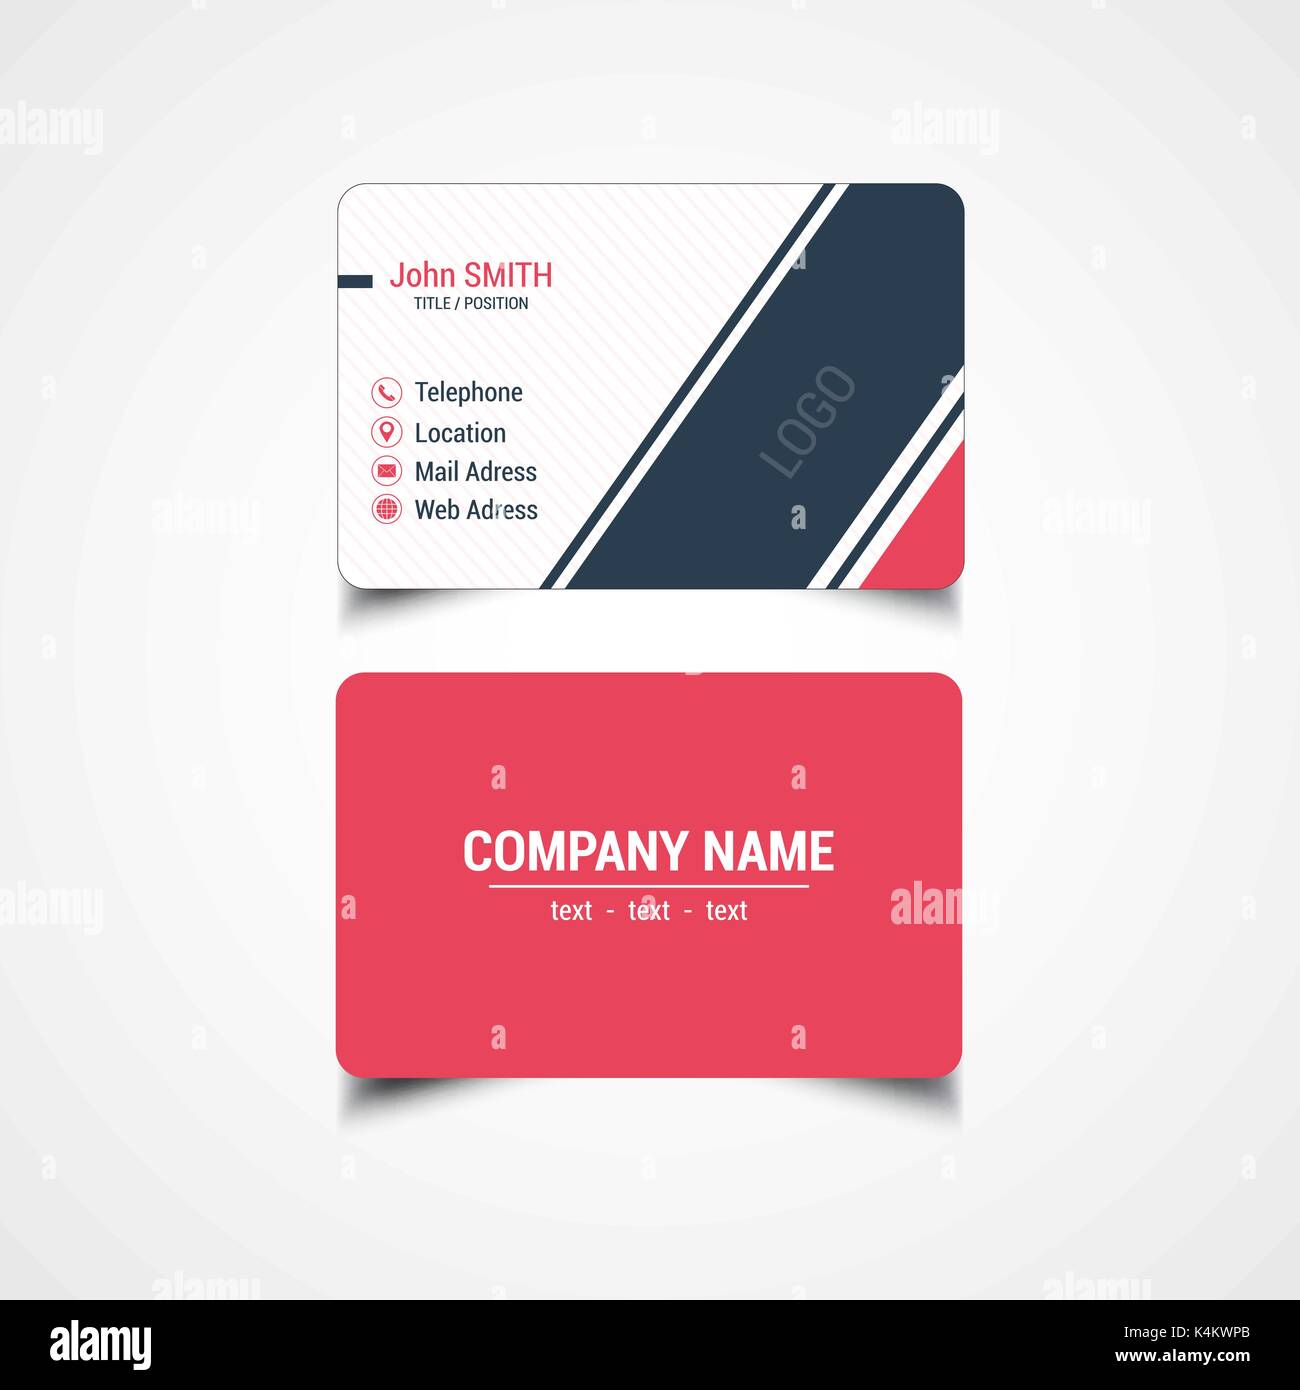 Round corner business card template vector illustration stock round corner business card template vector illustration friedricerecipe Image collections